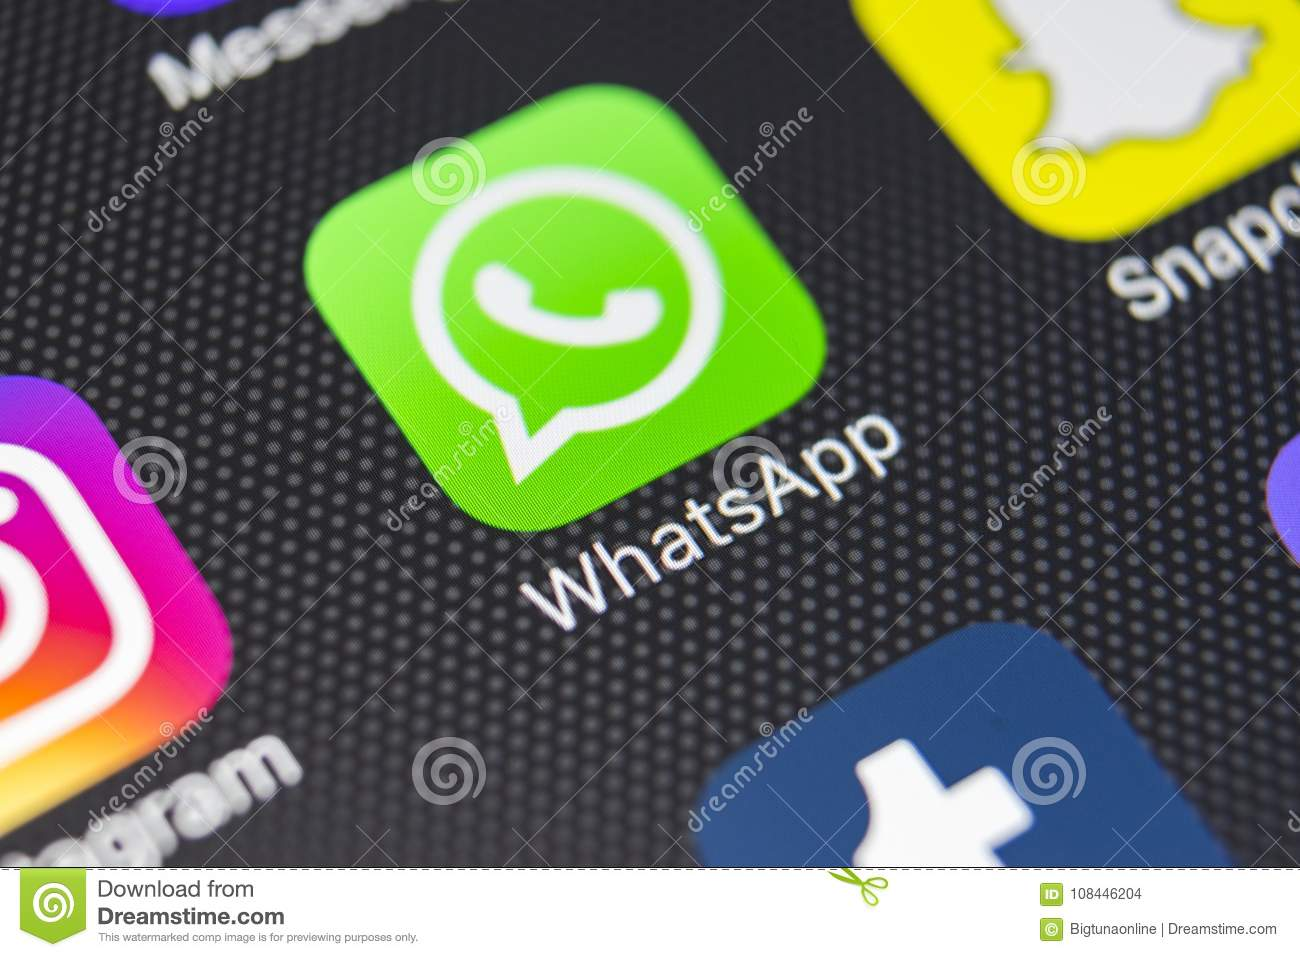 Whatsapp Messenger Application Icon On Apple Iphone 8 Smartphone Screen Close Up Whatsapp Messenger App Icon Editorial Stock Image Image Of Russia Internet 108446204